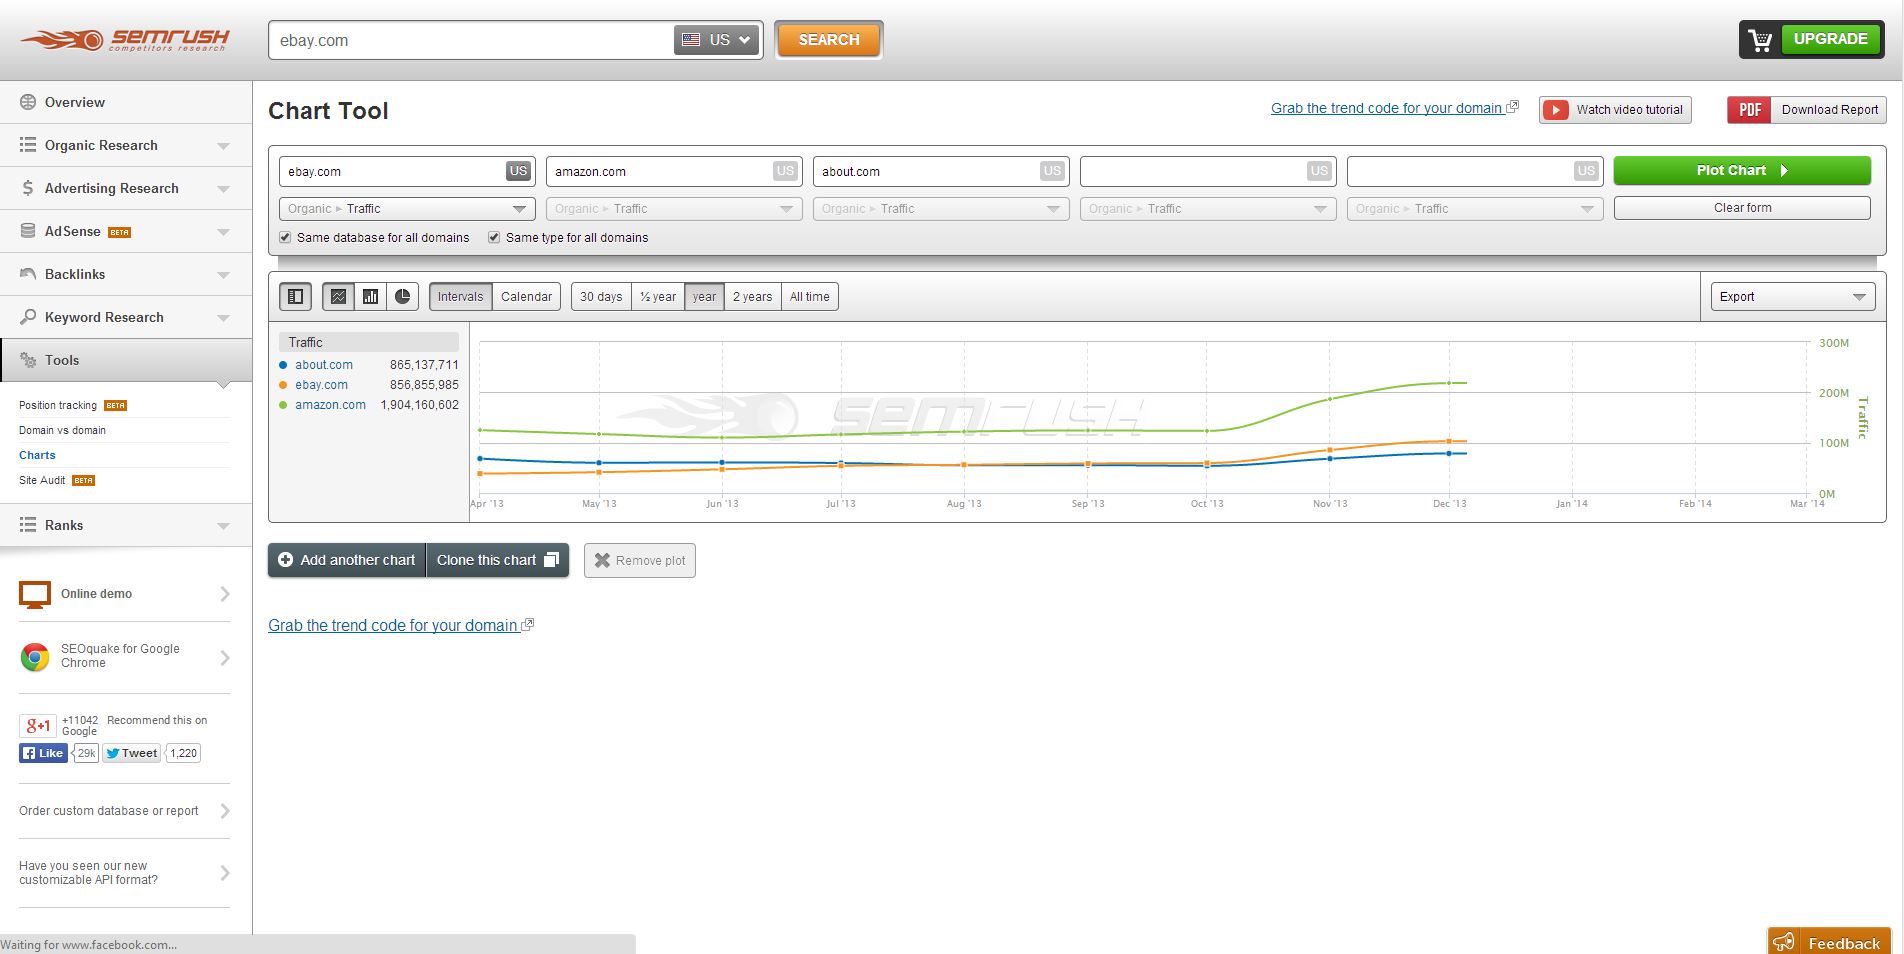 SEMrush screenshot